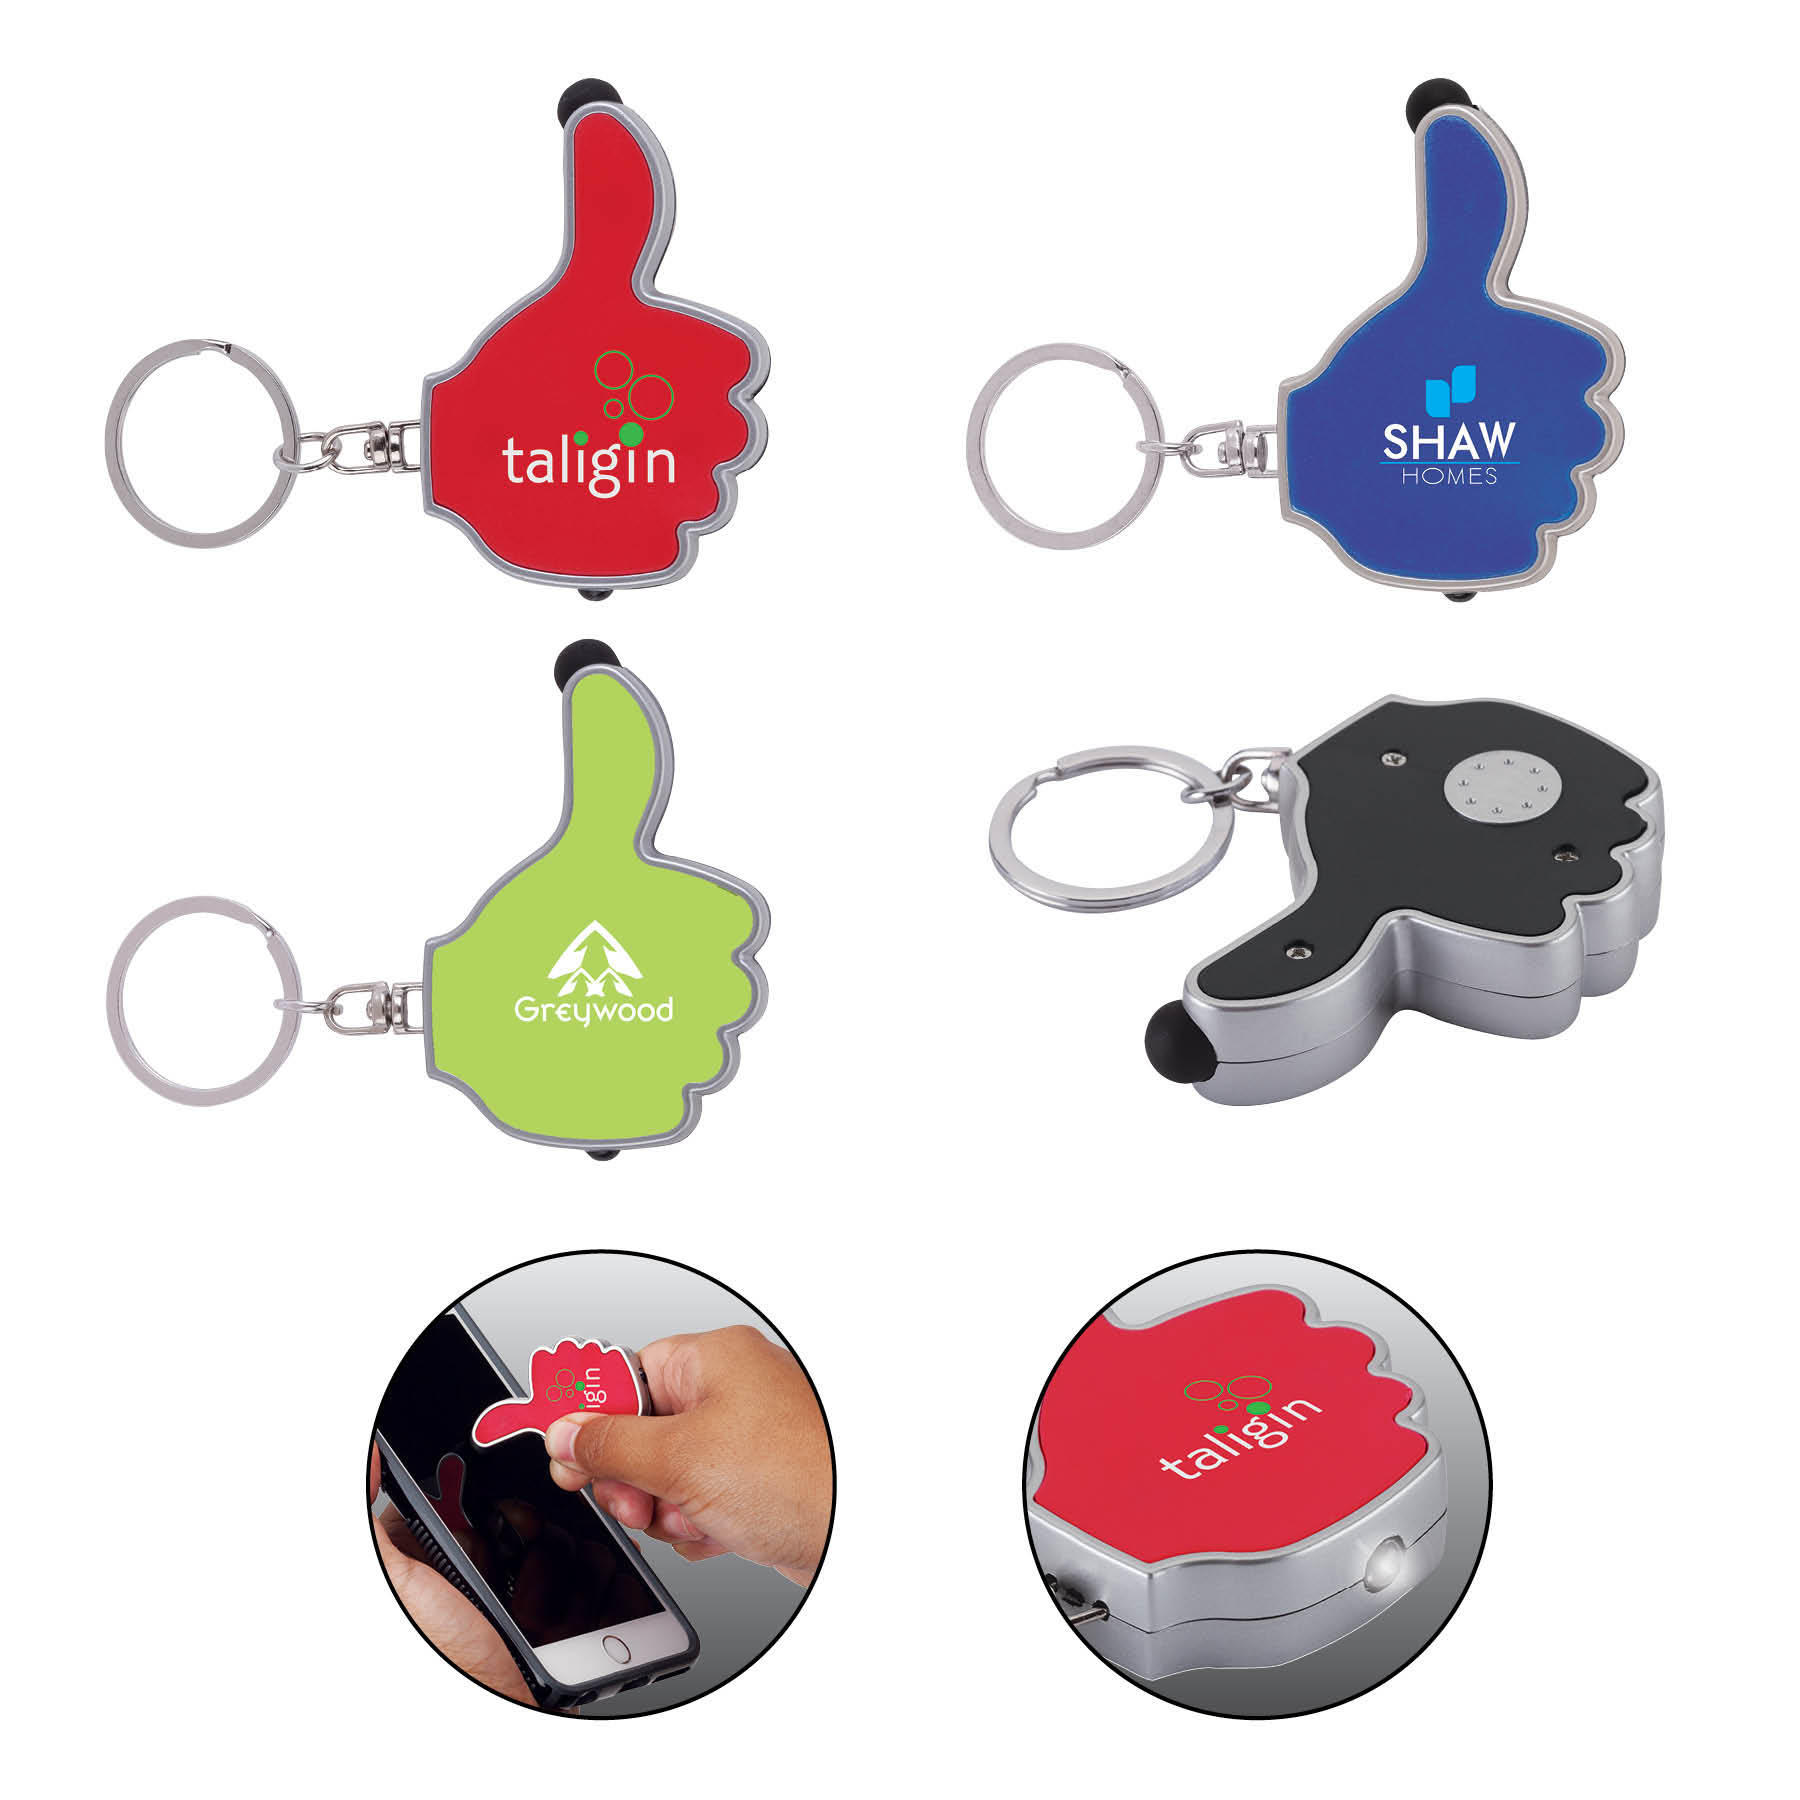 Thumbs-Up LED Keyring / Stylus